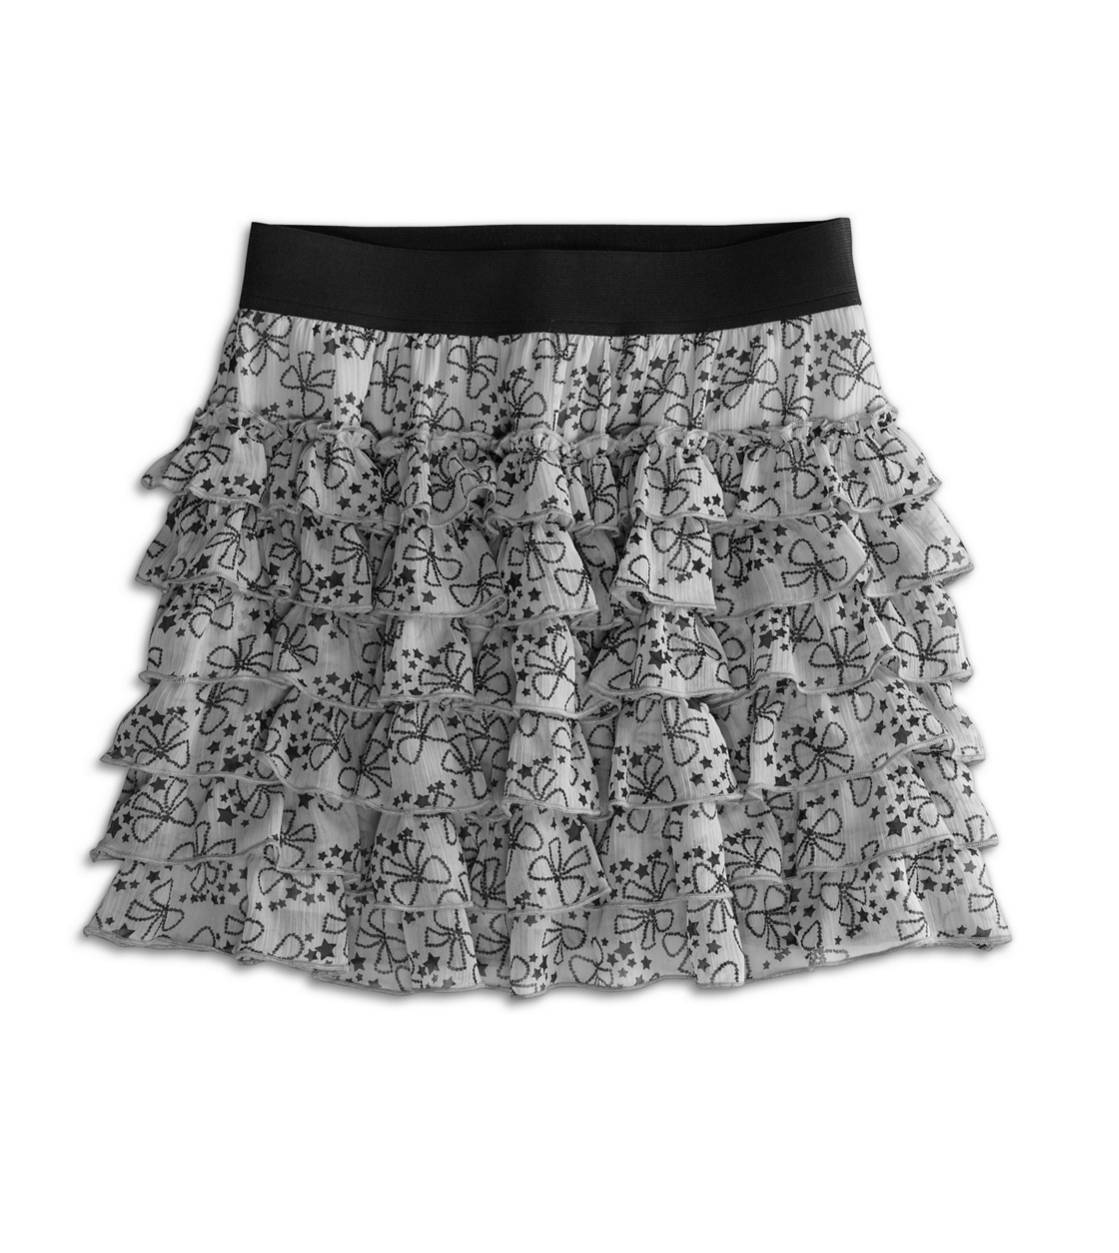 77 twirly ruffle skirt | 77kids by American Eagle from ae.com